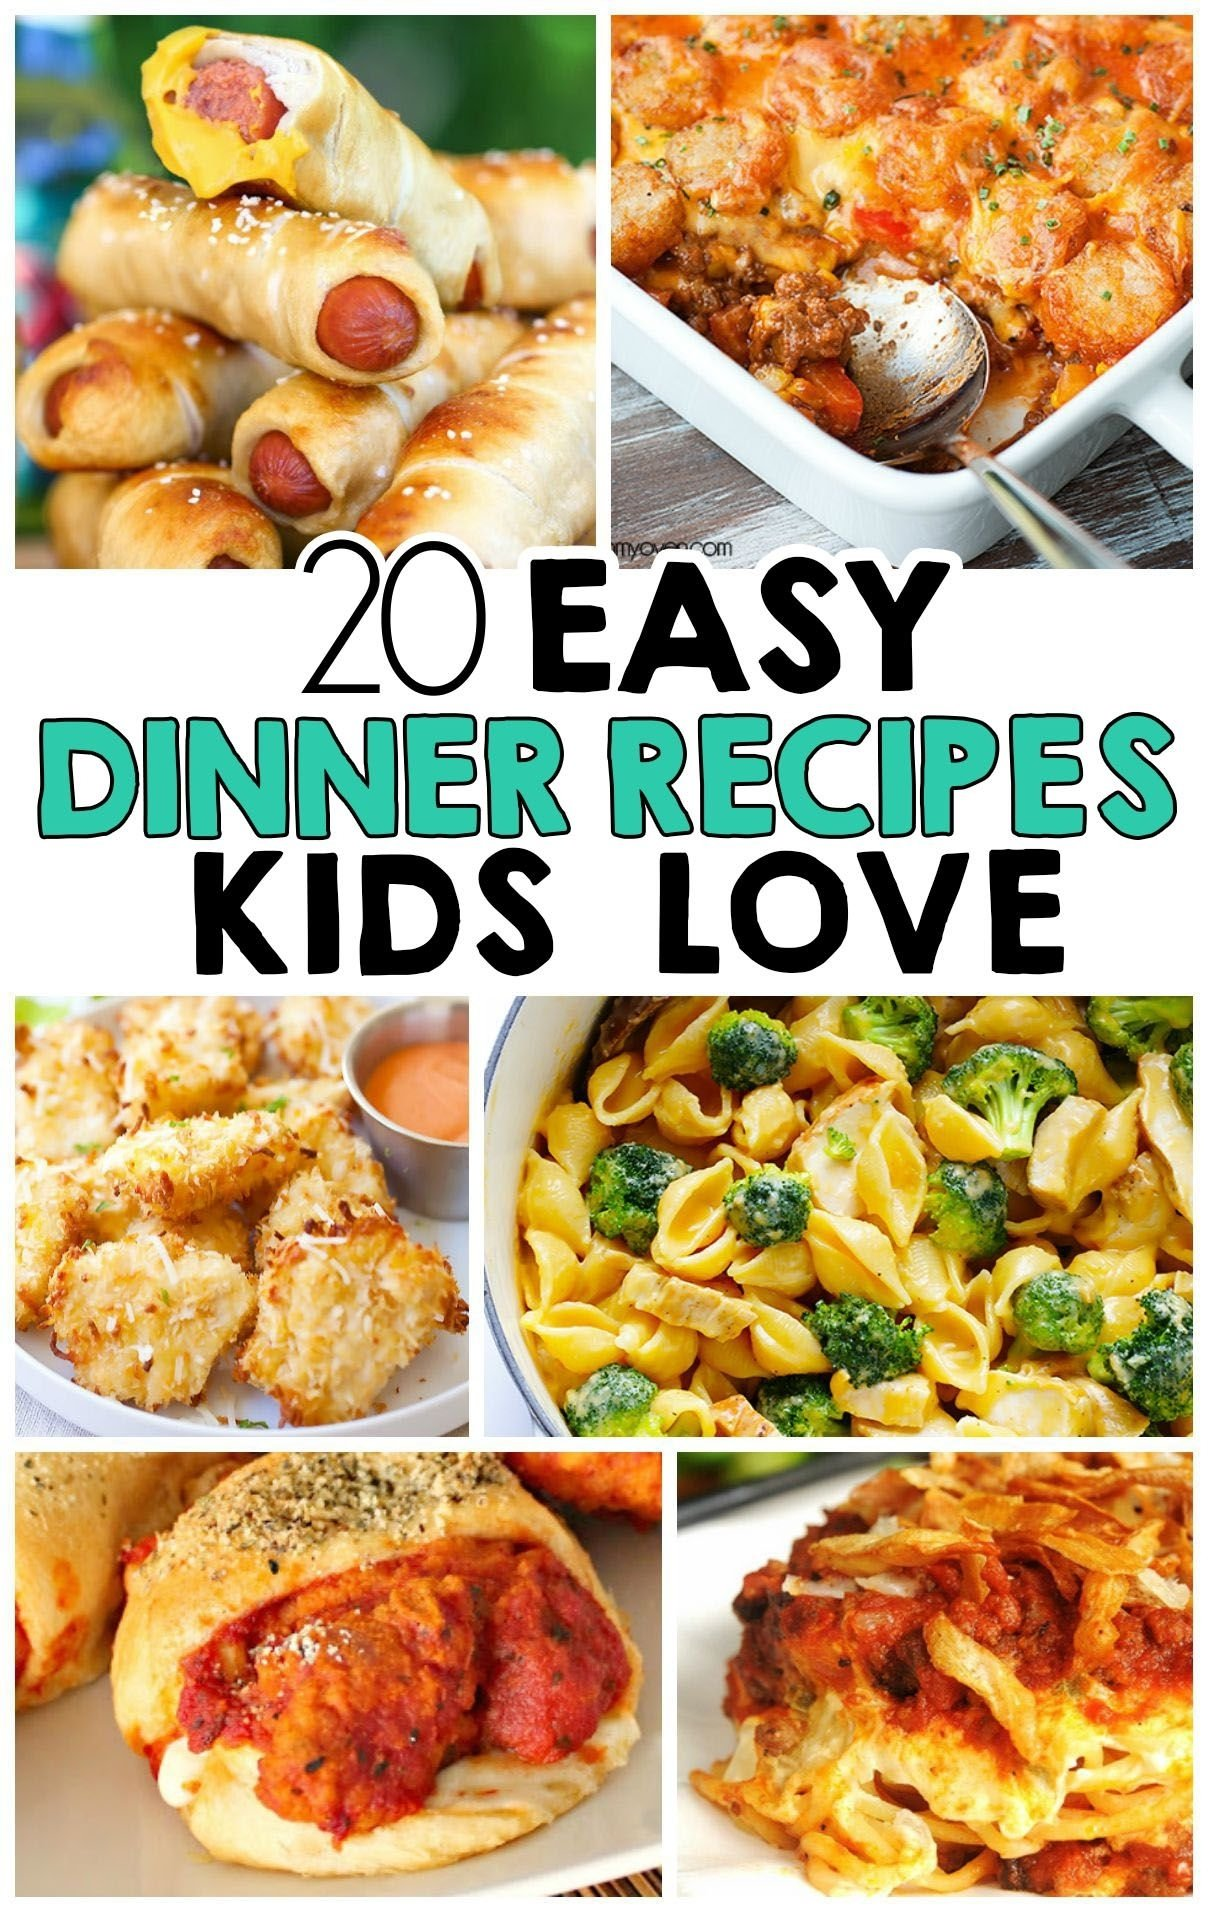 10 Unique Fun Dinner Ideas For Kids 20 easy dinner recipes that kids love dinners easy and recipes 12 2020